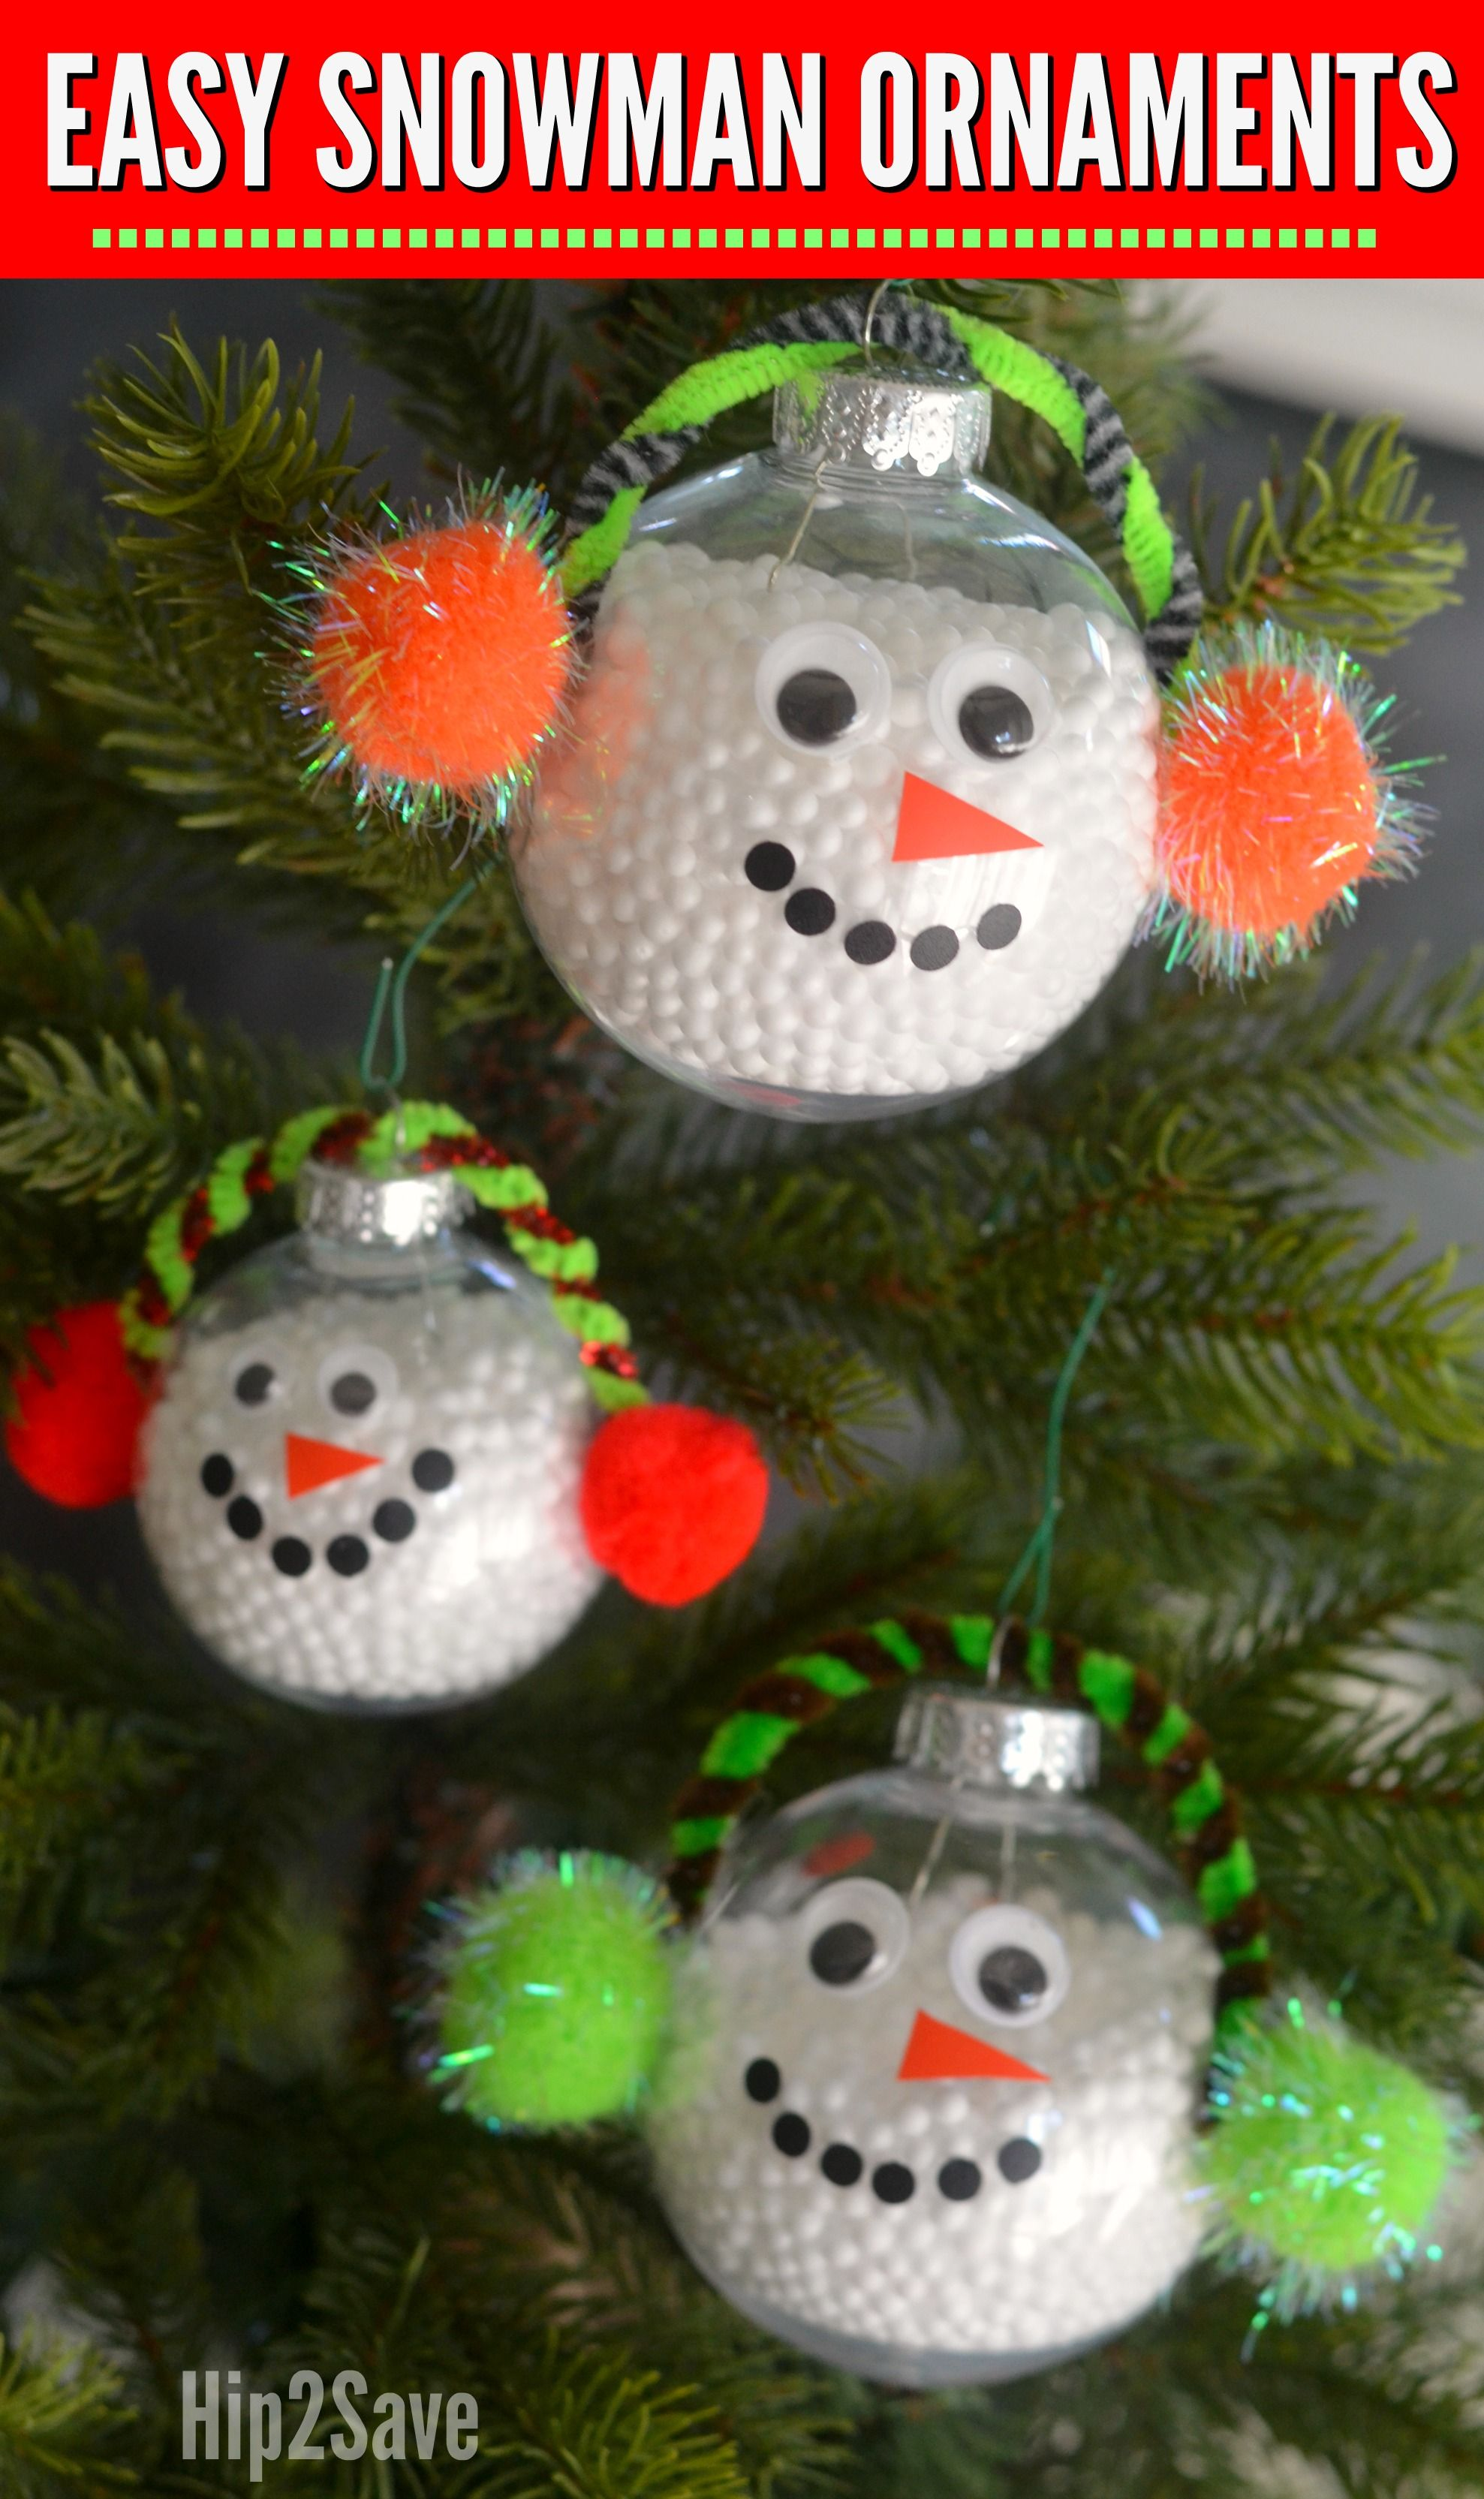 Turn Clear Ornaments Into A Cute Snowman To Hang On The Tree With This Easy Di Christmas Ornament Crafts Kids Christmas Ornaments Snowman Christmas Decorations